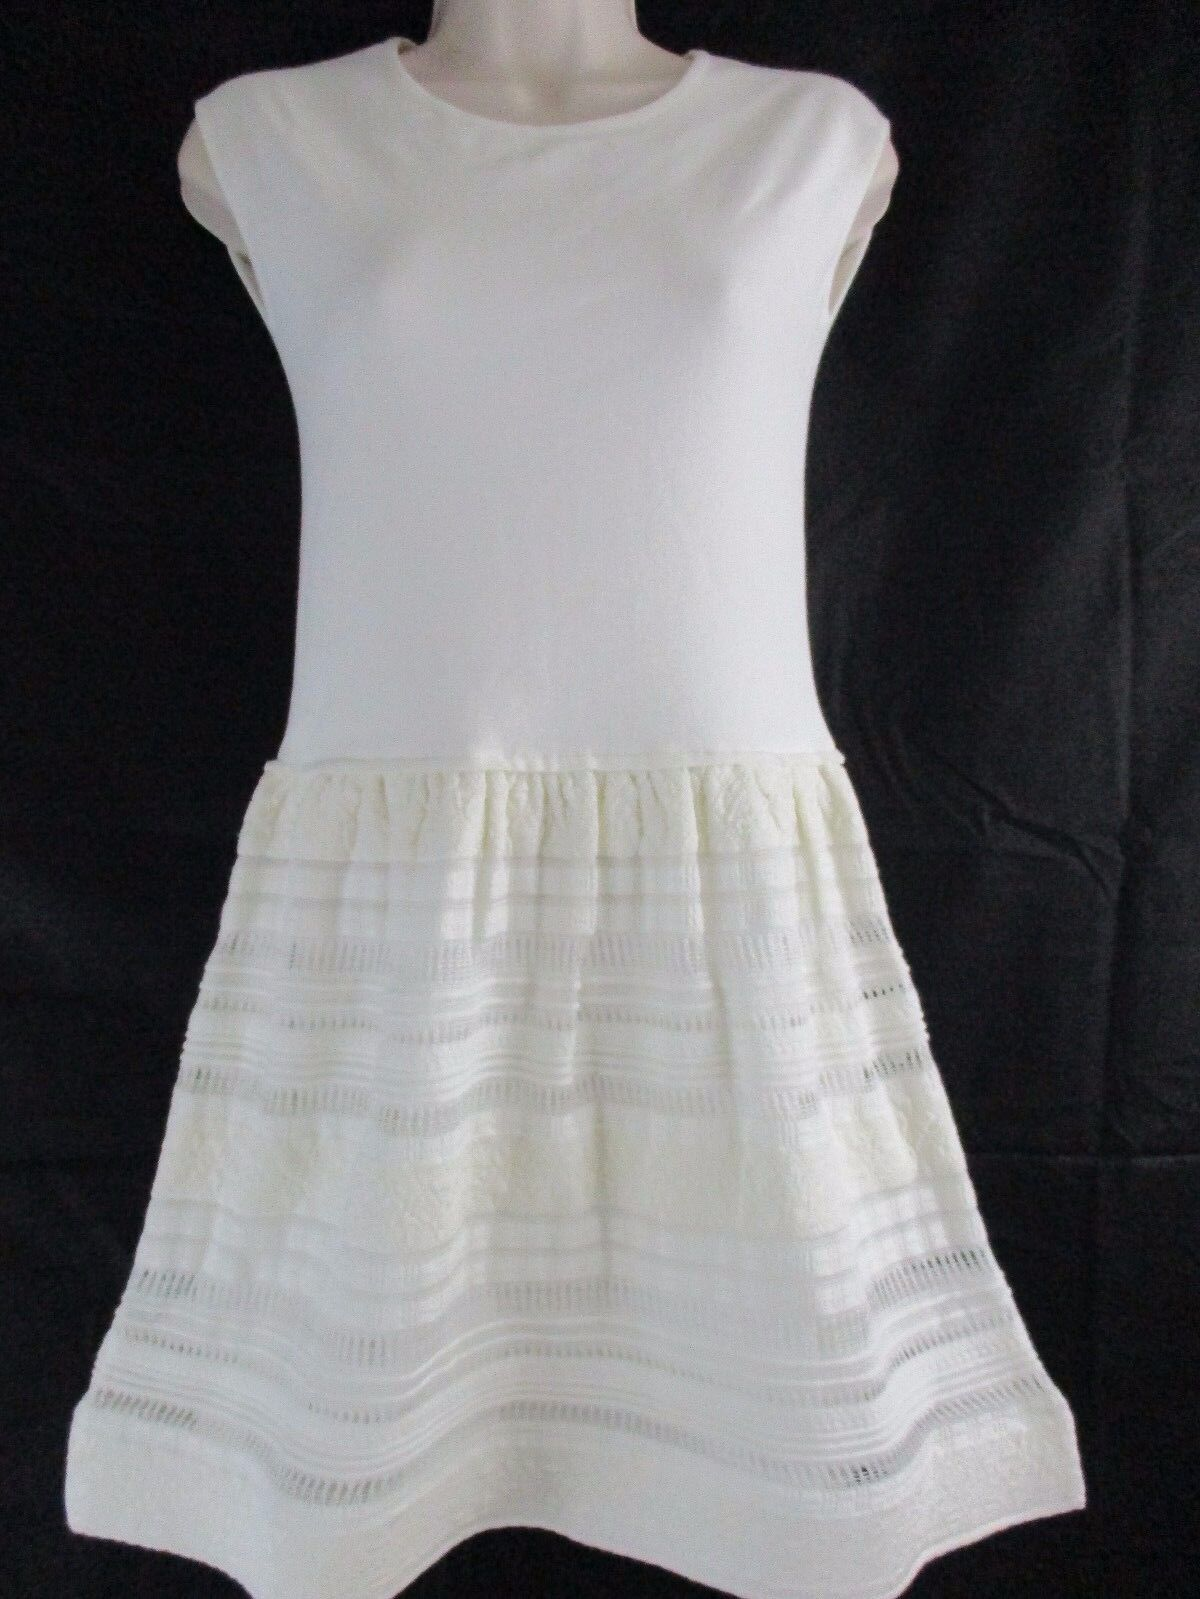 Atos Lombardini Woherren Weiß Stretch Calse Short Dress Größe 2 IT 38     U5